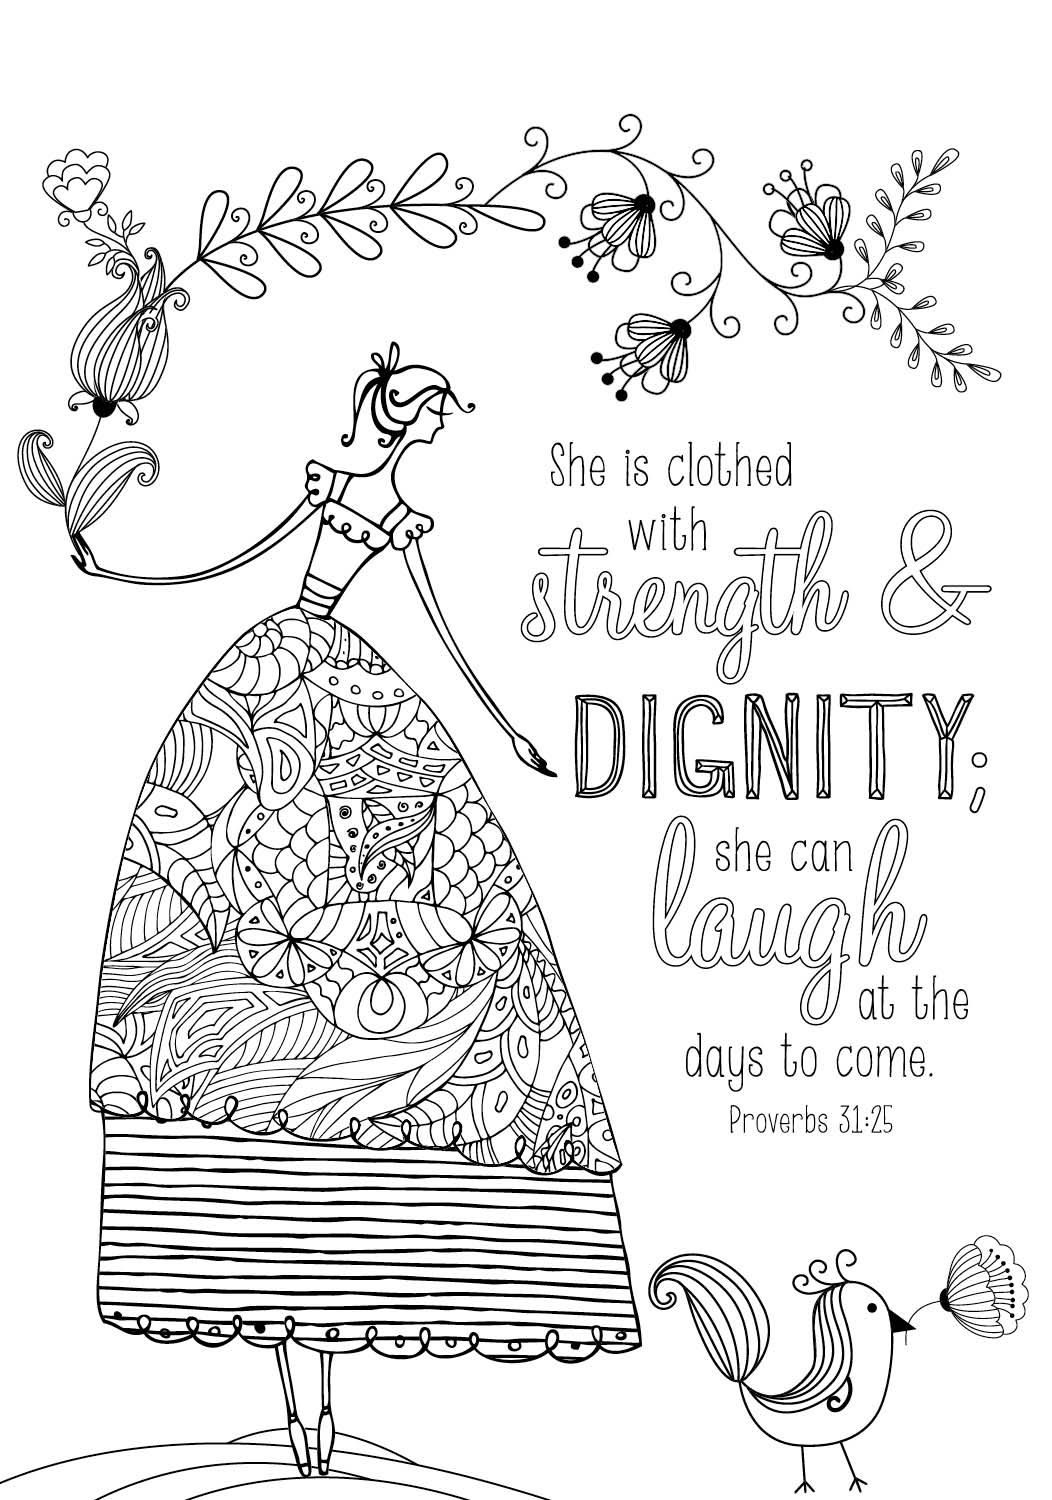 Coloring Page From Coloring Book For Mom | ð ð¸ñ�ñ�ð½ðºð¸3